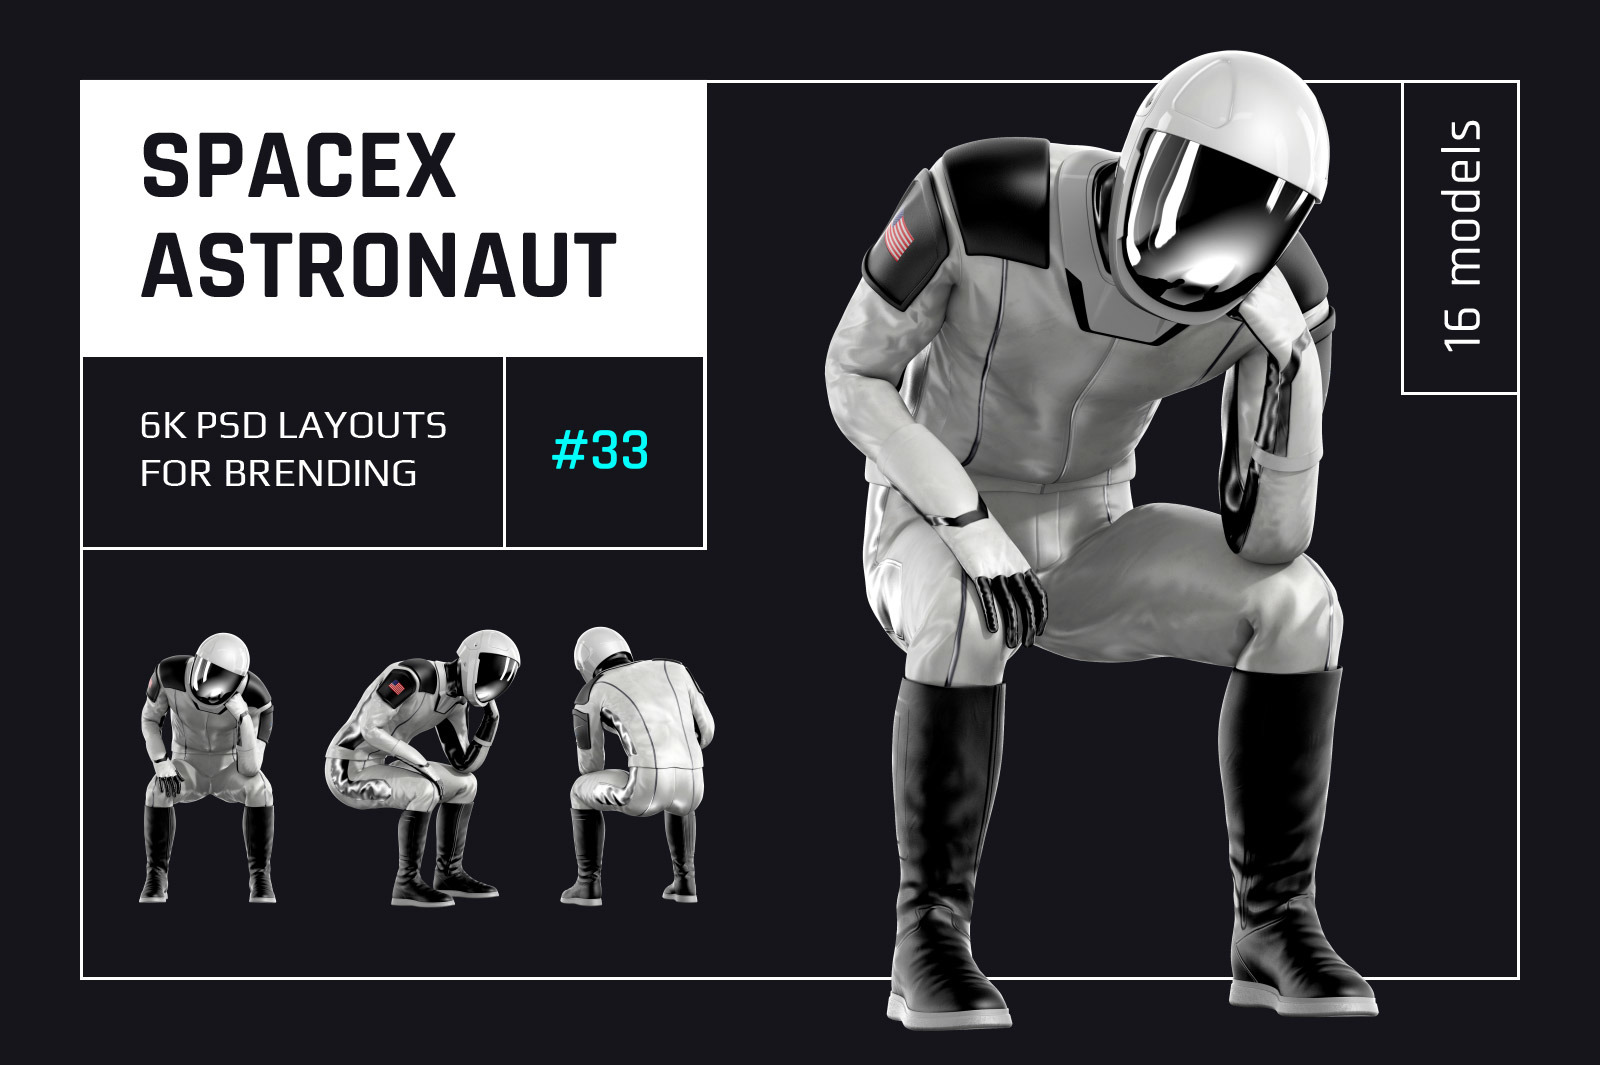 PSD Mockup 3D model SpaceX Astronaut #33